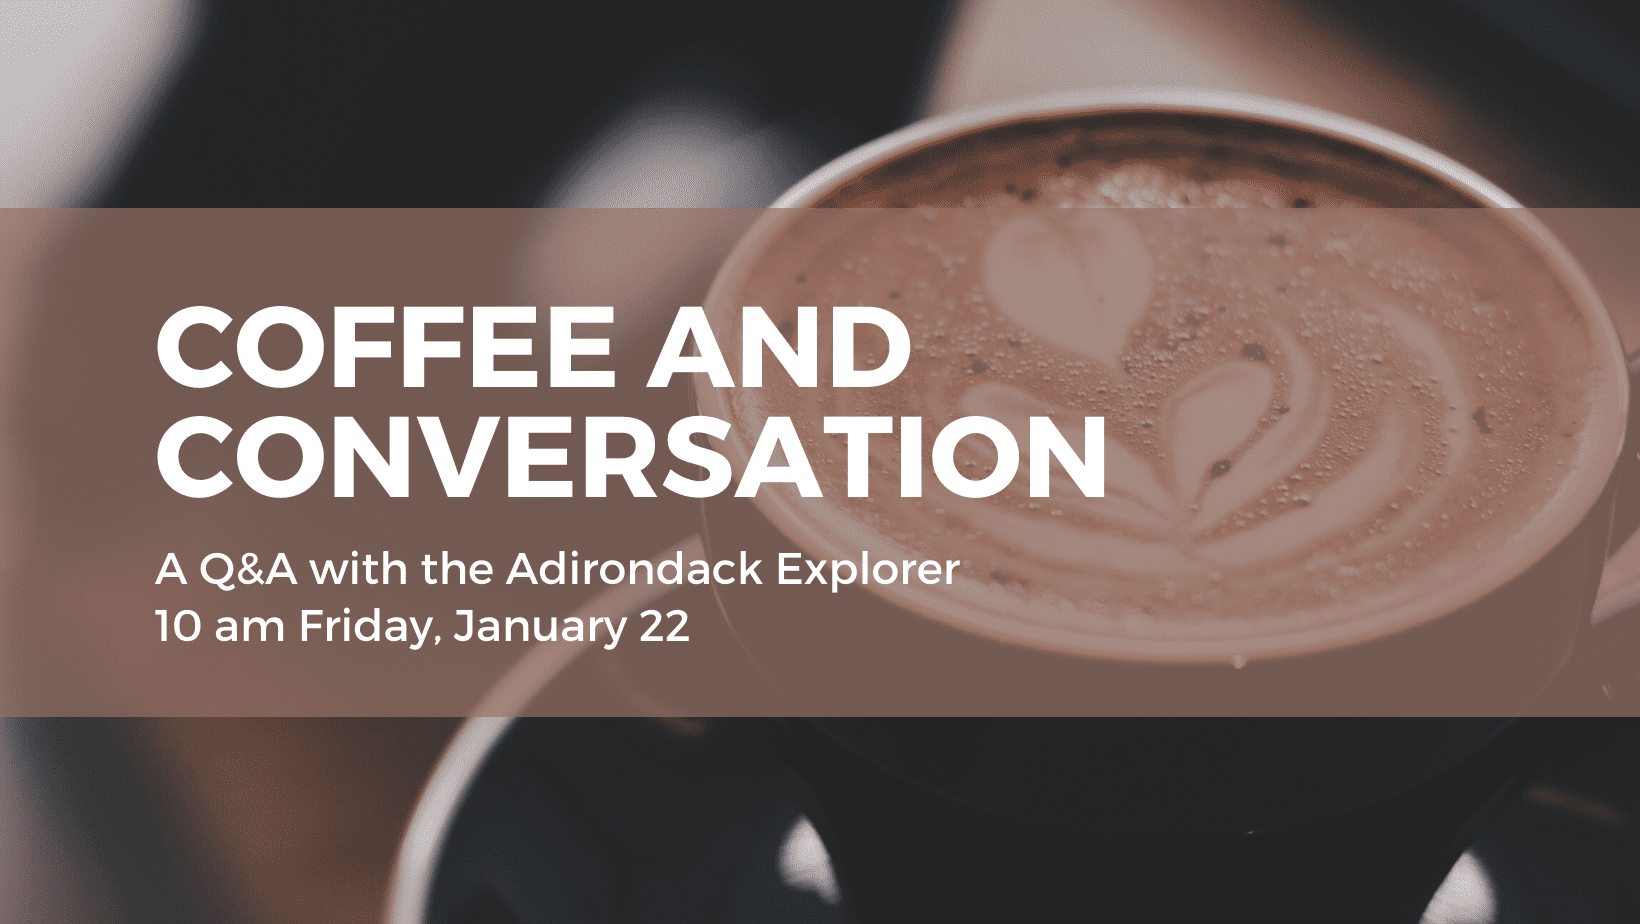 coffee and conversation event